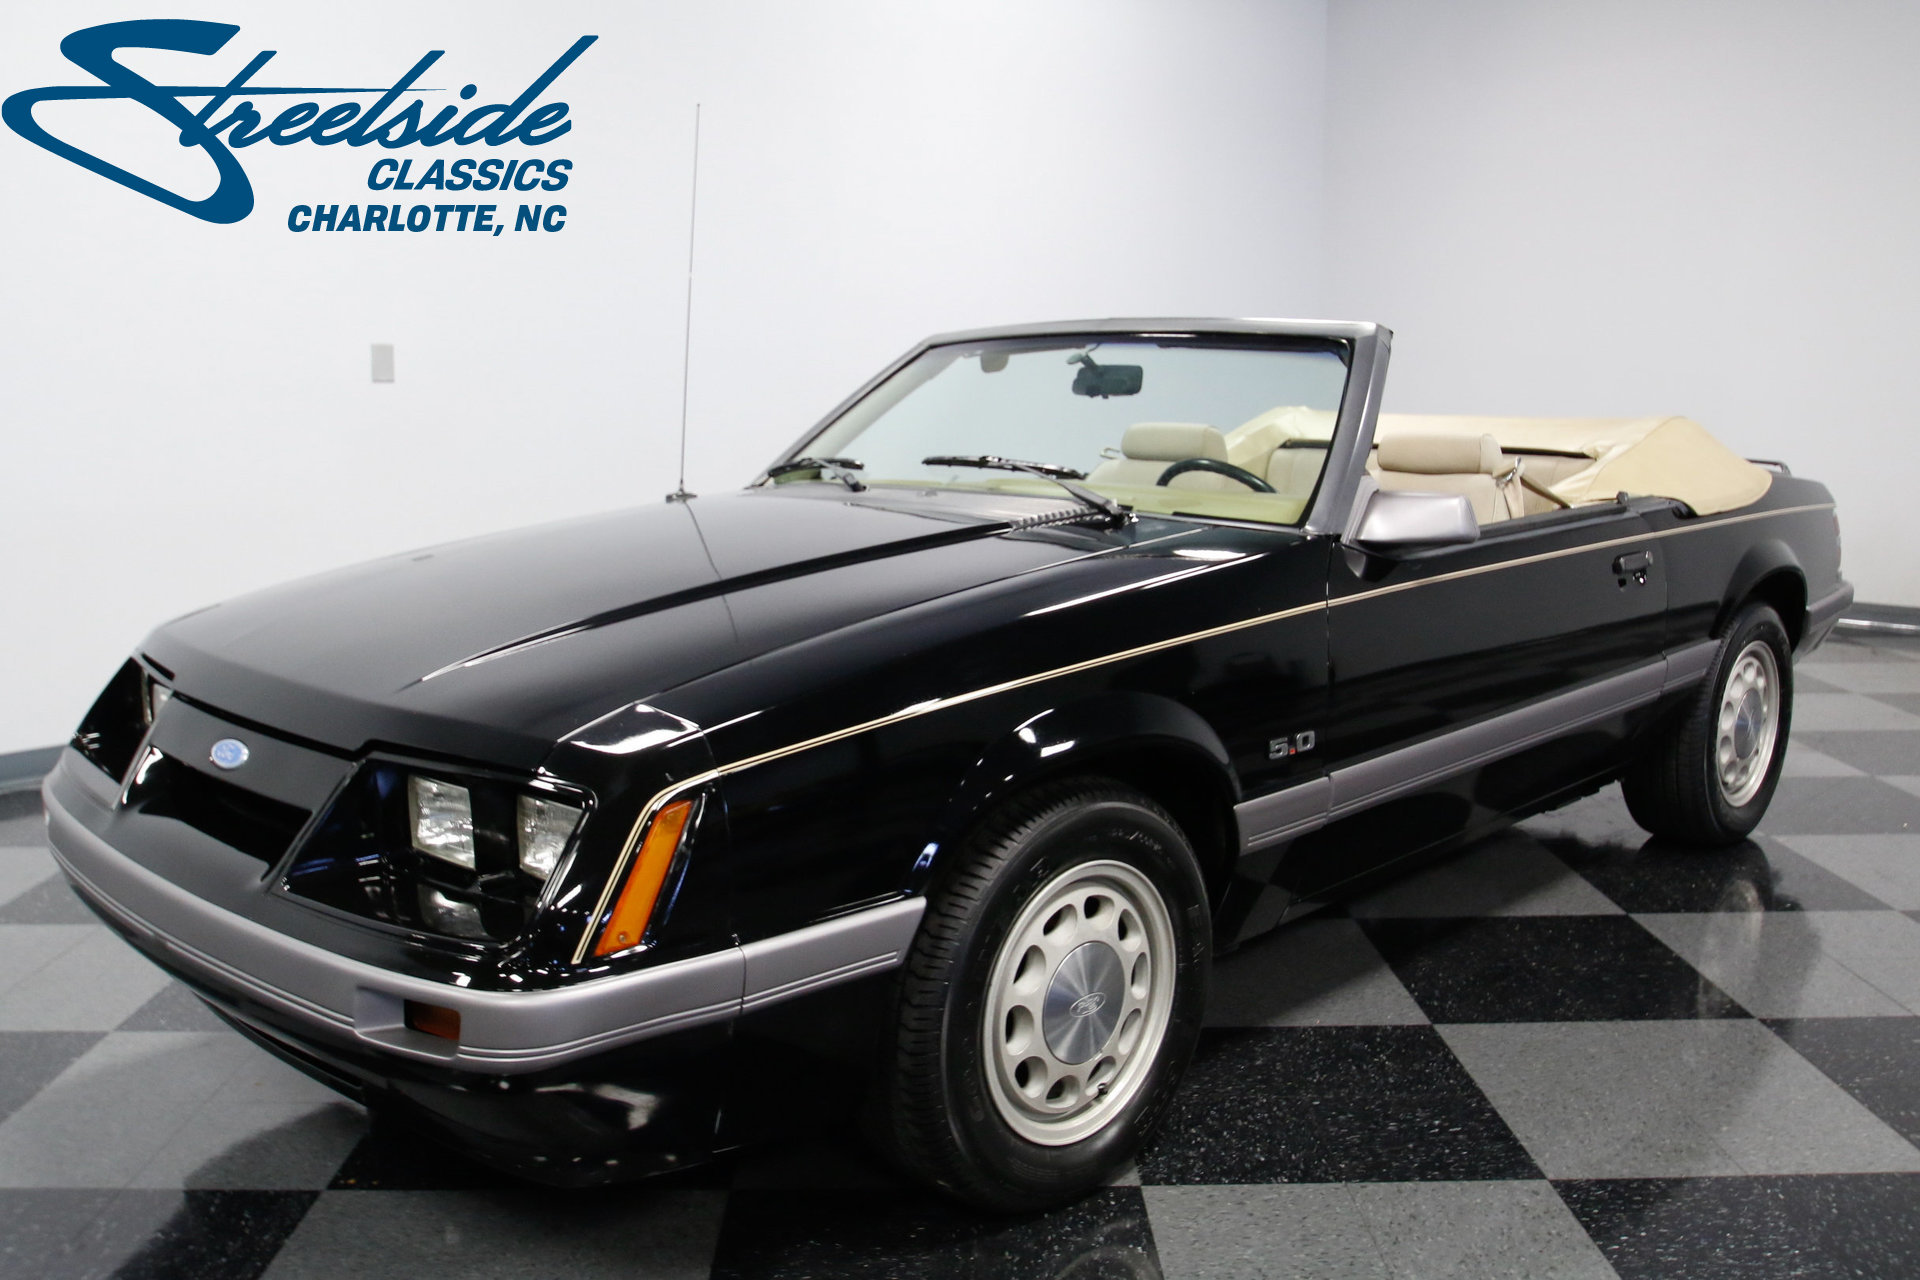 1986 ford mustang streetside classics the nation 39 s trusted classic car consignment dealer. Black Bedroom Furniture Sets. Home Design Ideas